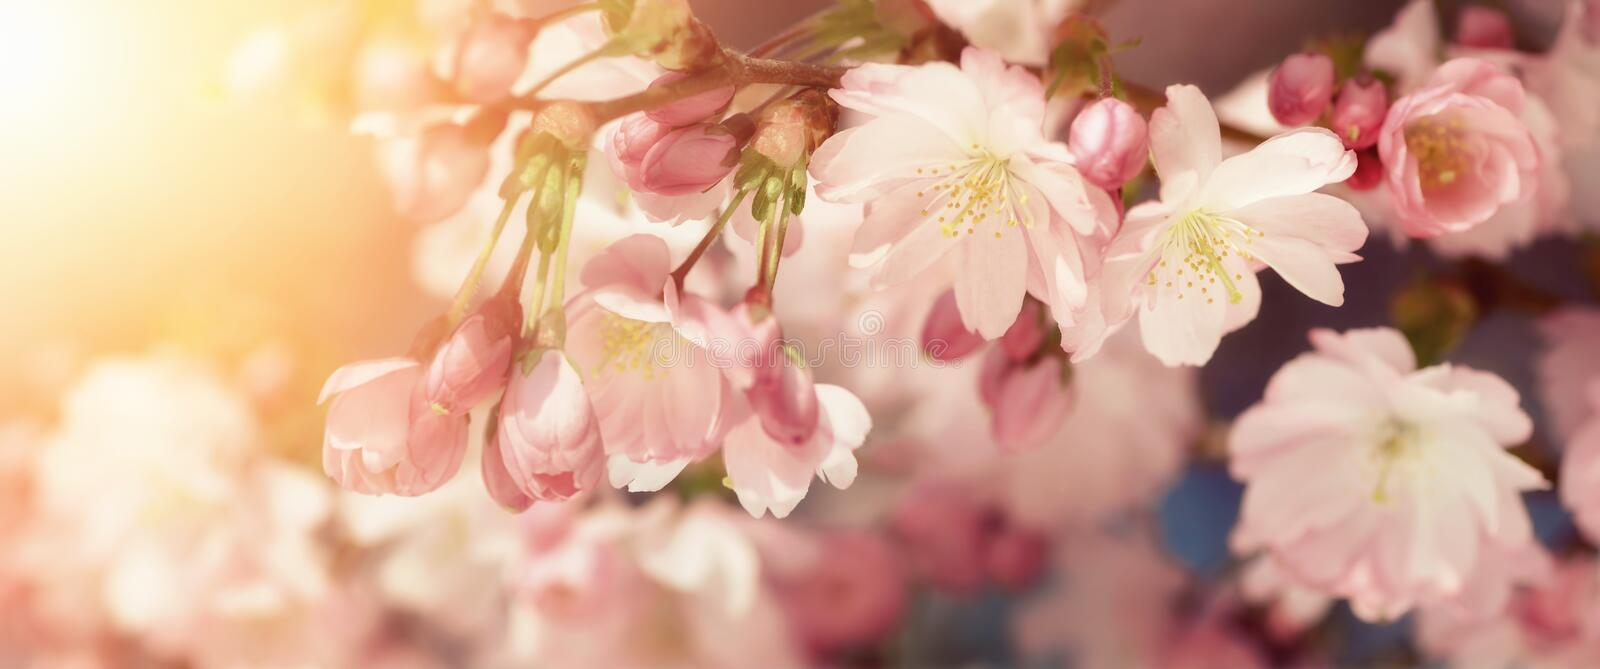 Download Cherry Blossoms In Retro-styled Colors Stock Photo - Image of bright, park: 52371722